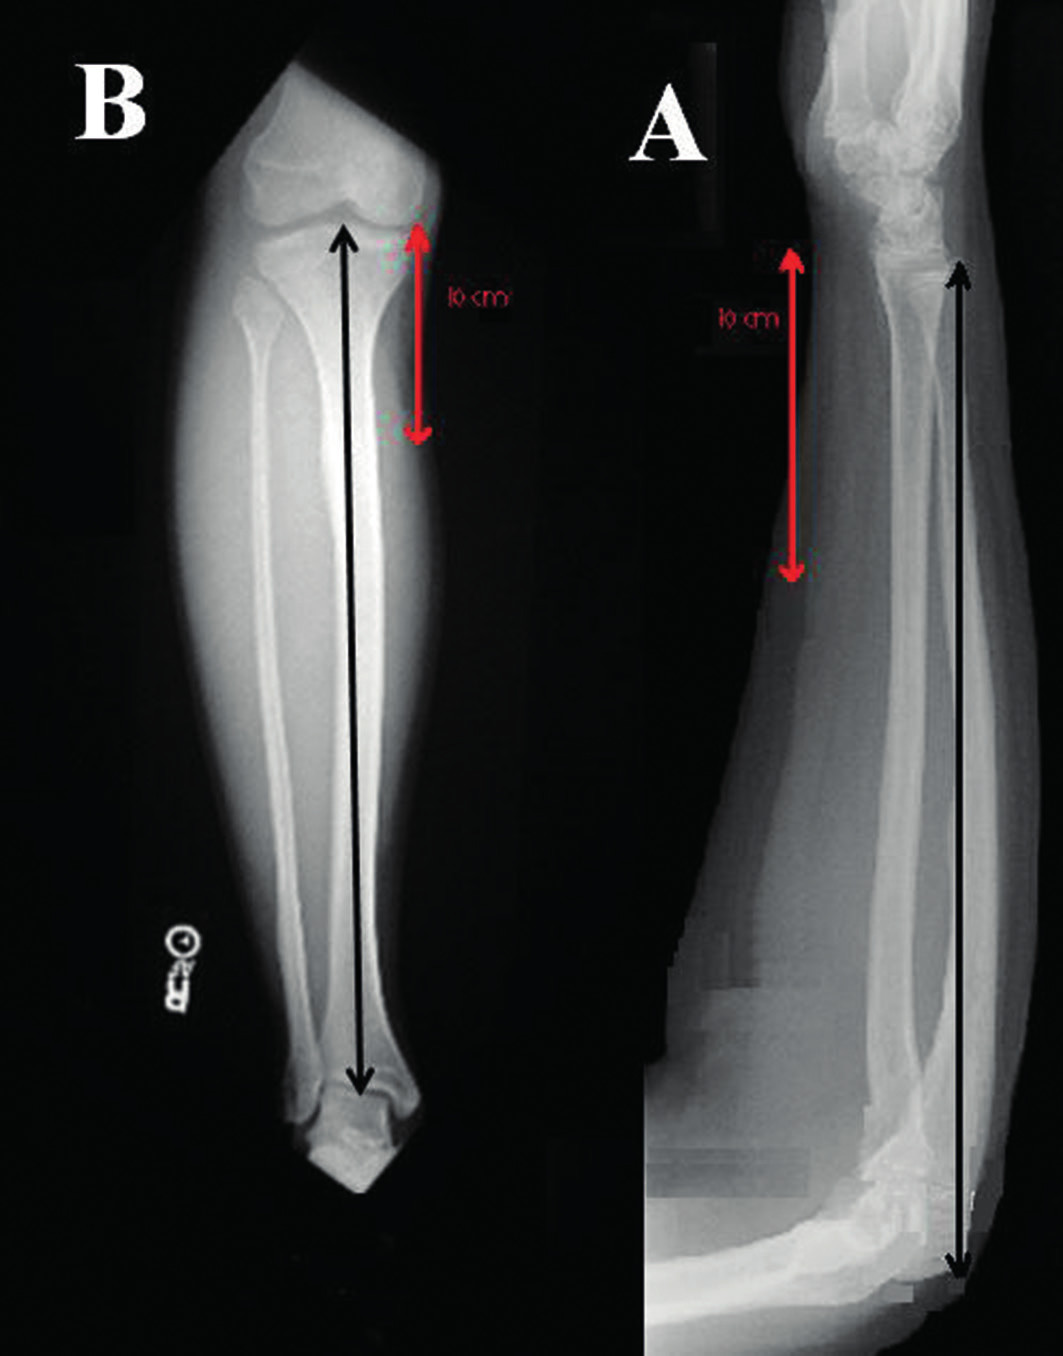 Figure 1. Antero-posterior X-rays of the right forearm (A) and leg (B) and the area of measurement in the ulna and tibia.